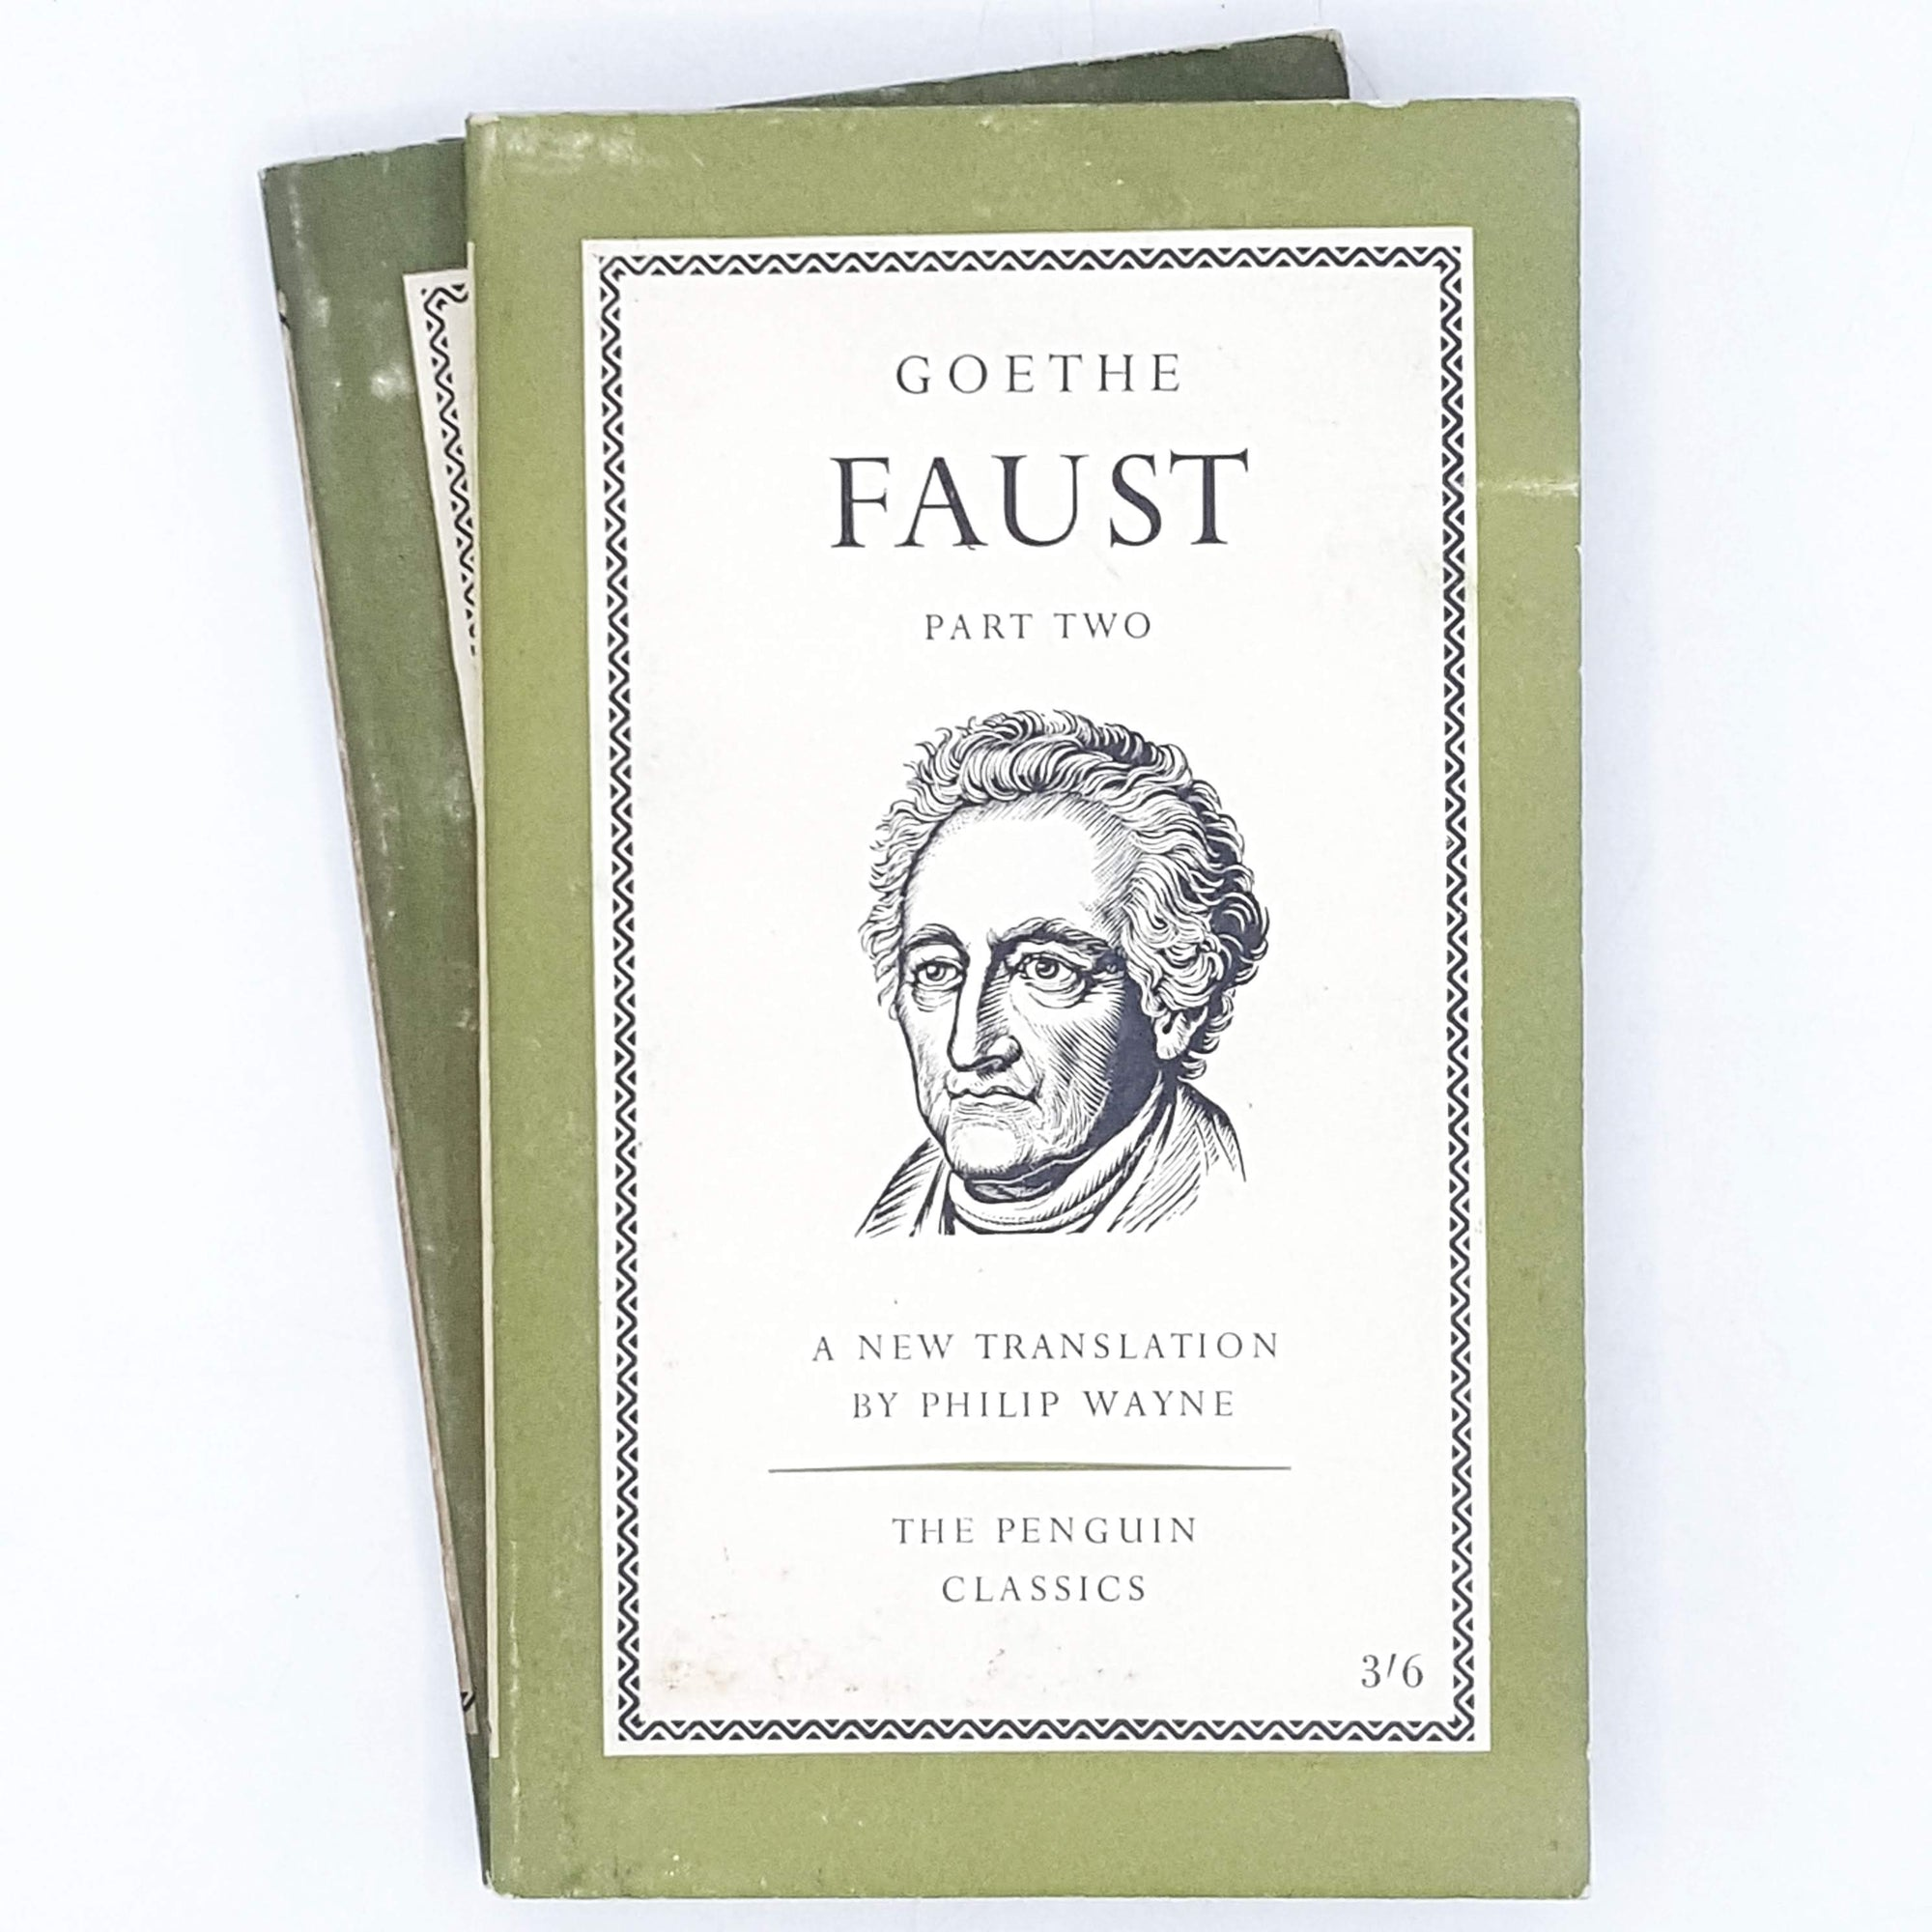 Collection Goethe's Faust 1956 - 1959